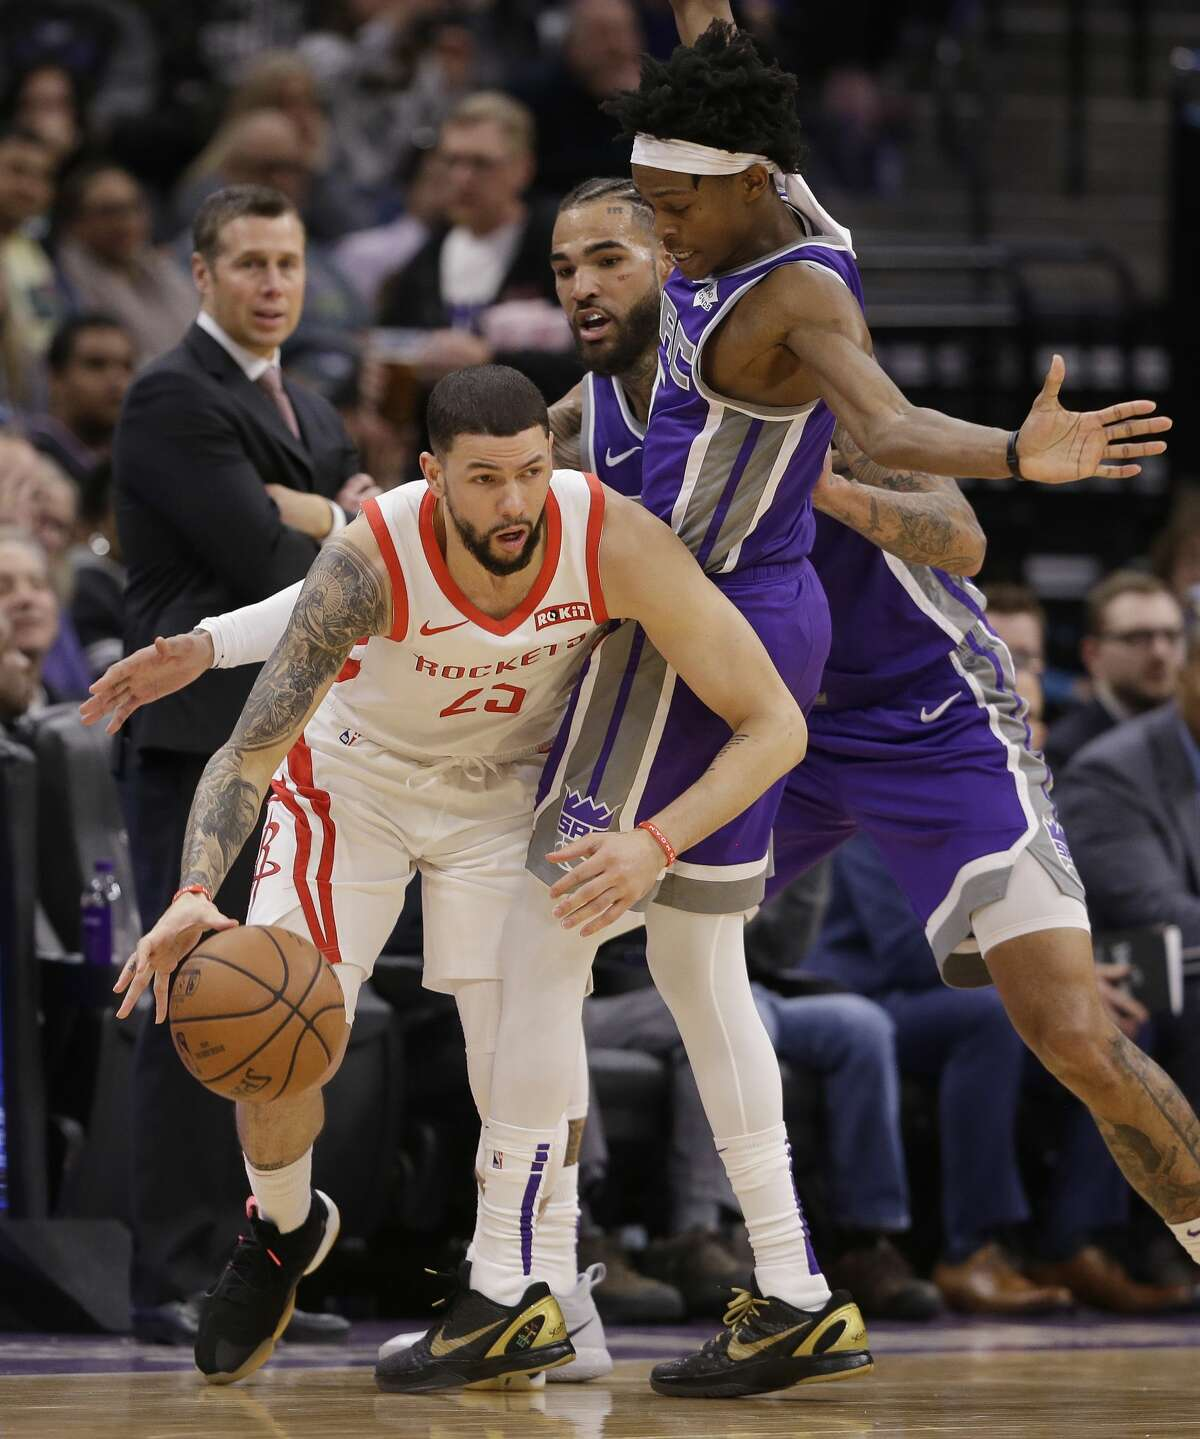 Houston Rockets guard Austin Rivers, left, tries to escape a double-team by Sacramento Kings' Willie Cauley-Stein, center, and De'Aaron Fox during the second half of an NBA basketball game Wednesday, Feb. 6, 2019, in Sacramento, Calif. The Rockets won 127-101. (AP Photo/Rich Pedroncelli)